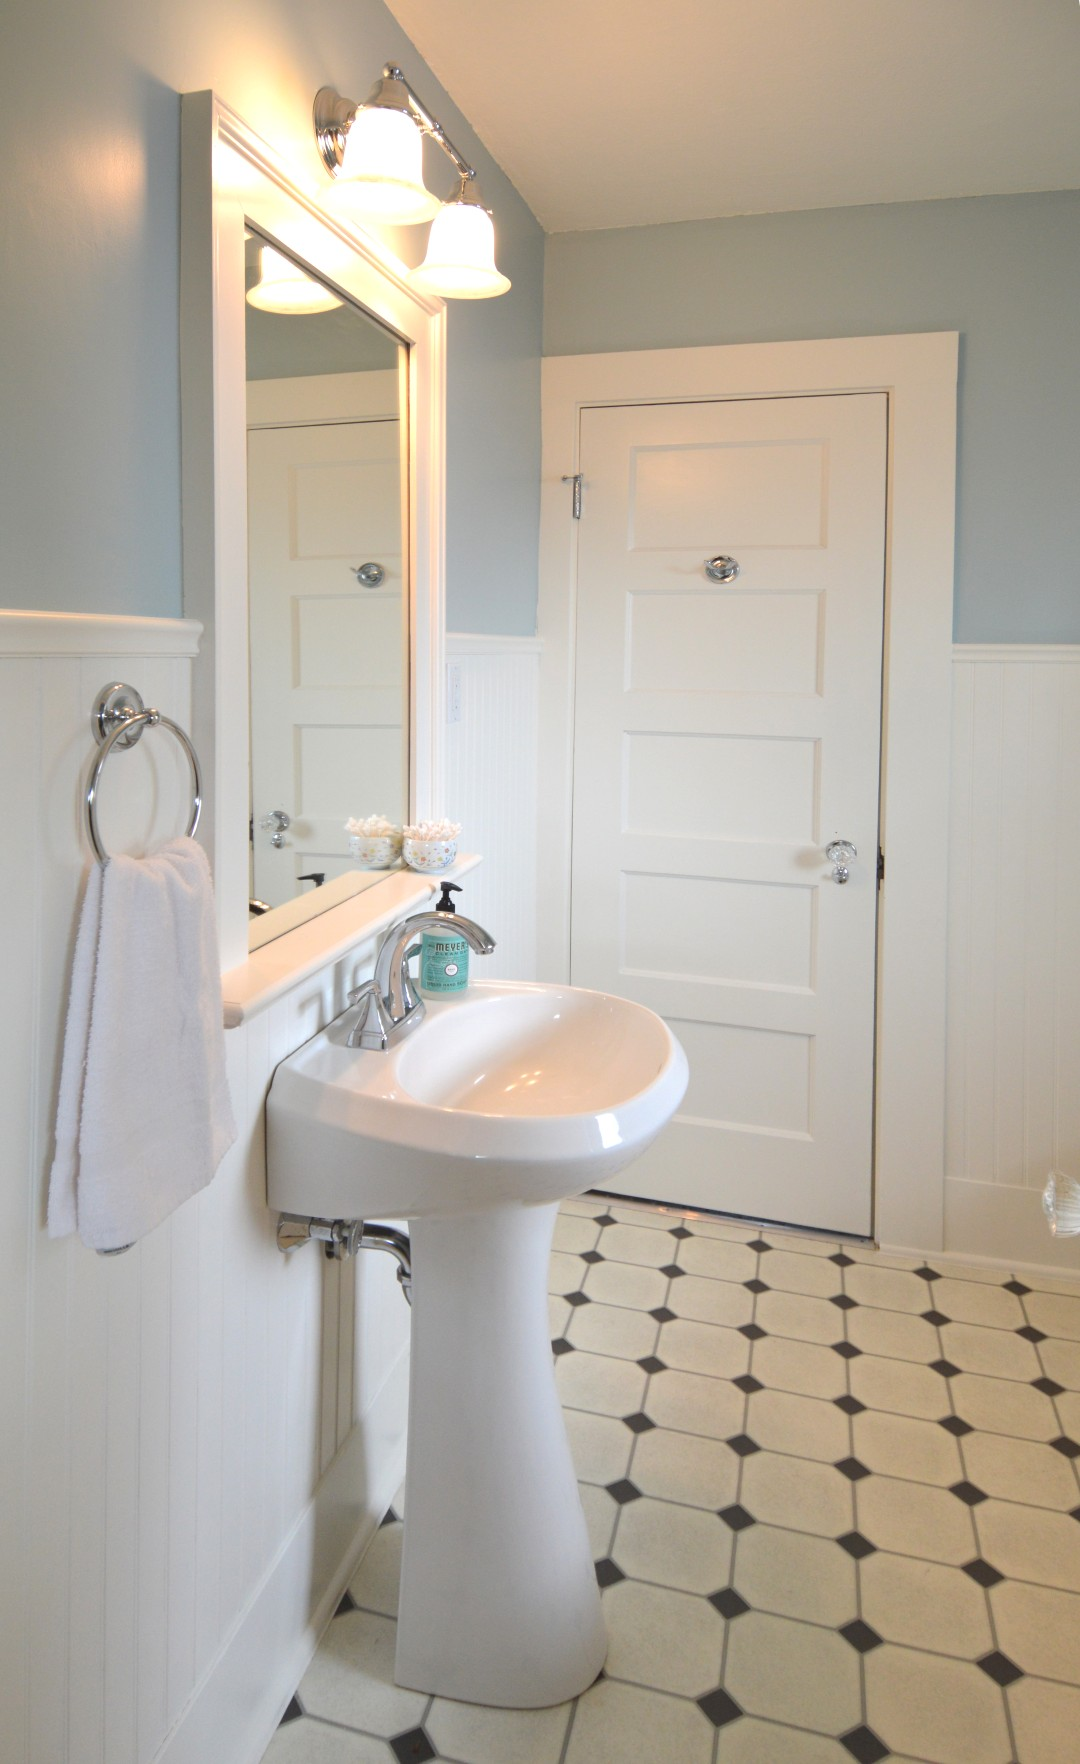 Even The Most Basic Projects Simple And Modest Can Have A Strong Sense Of Luxury Should Always Be Practical This Bathroom For Family Four Will